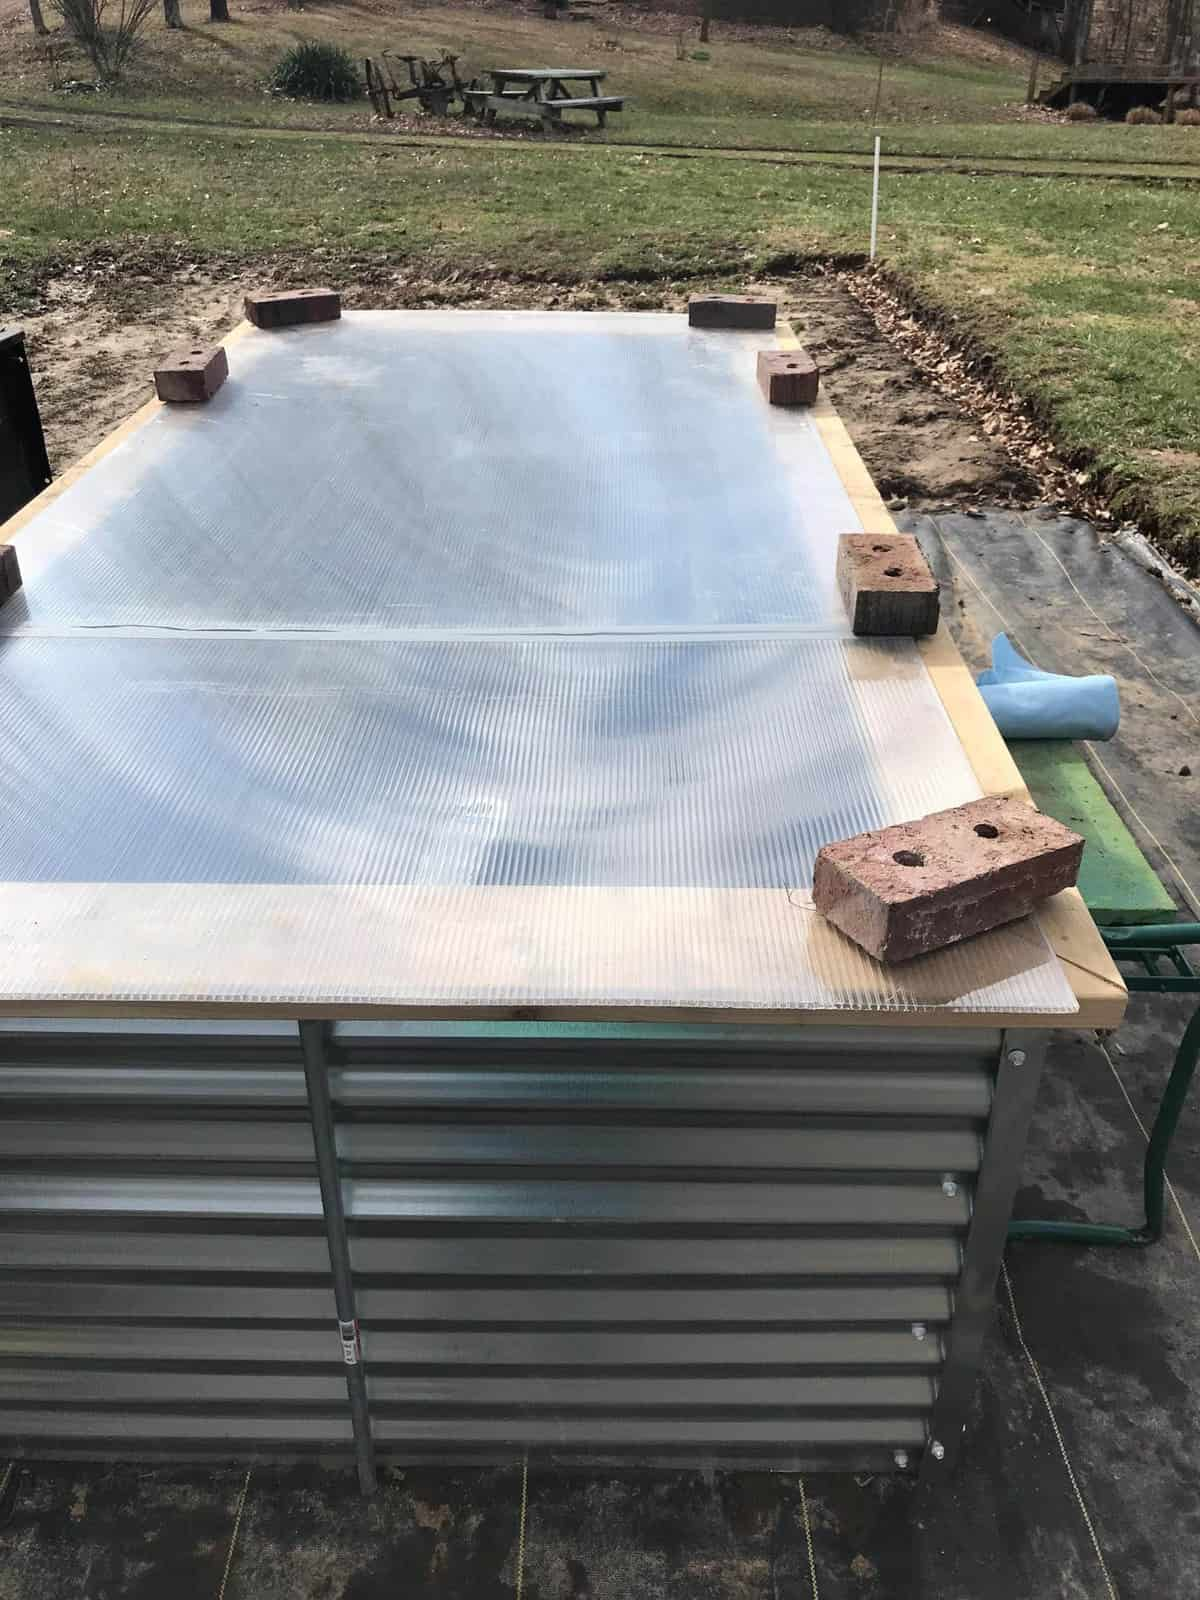 Side shot of a Galvanized Steel Raised Garden Bed with a greenhouse panel laid over top, held down with bricks